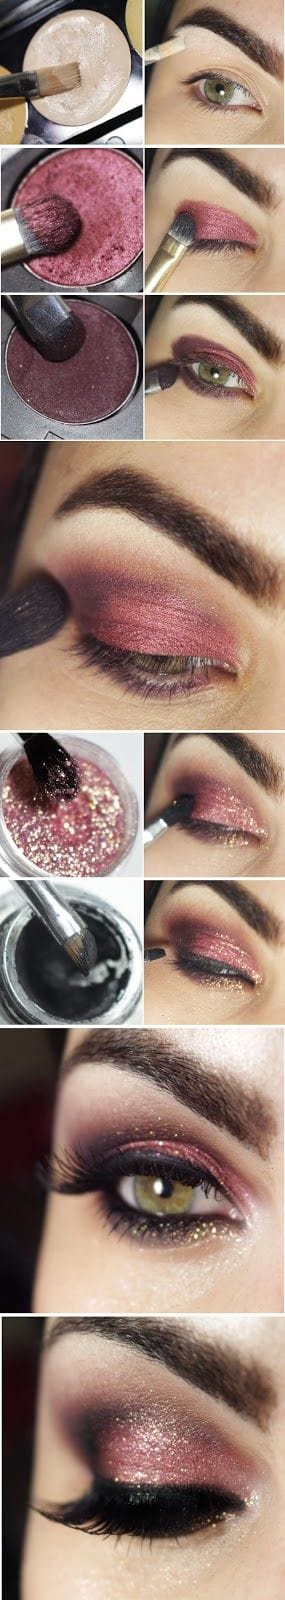 8makeup-estate-2015